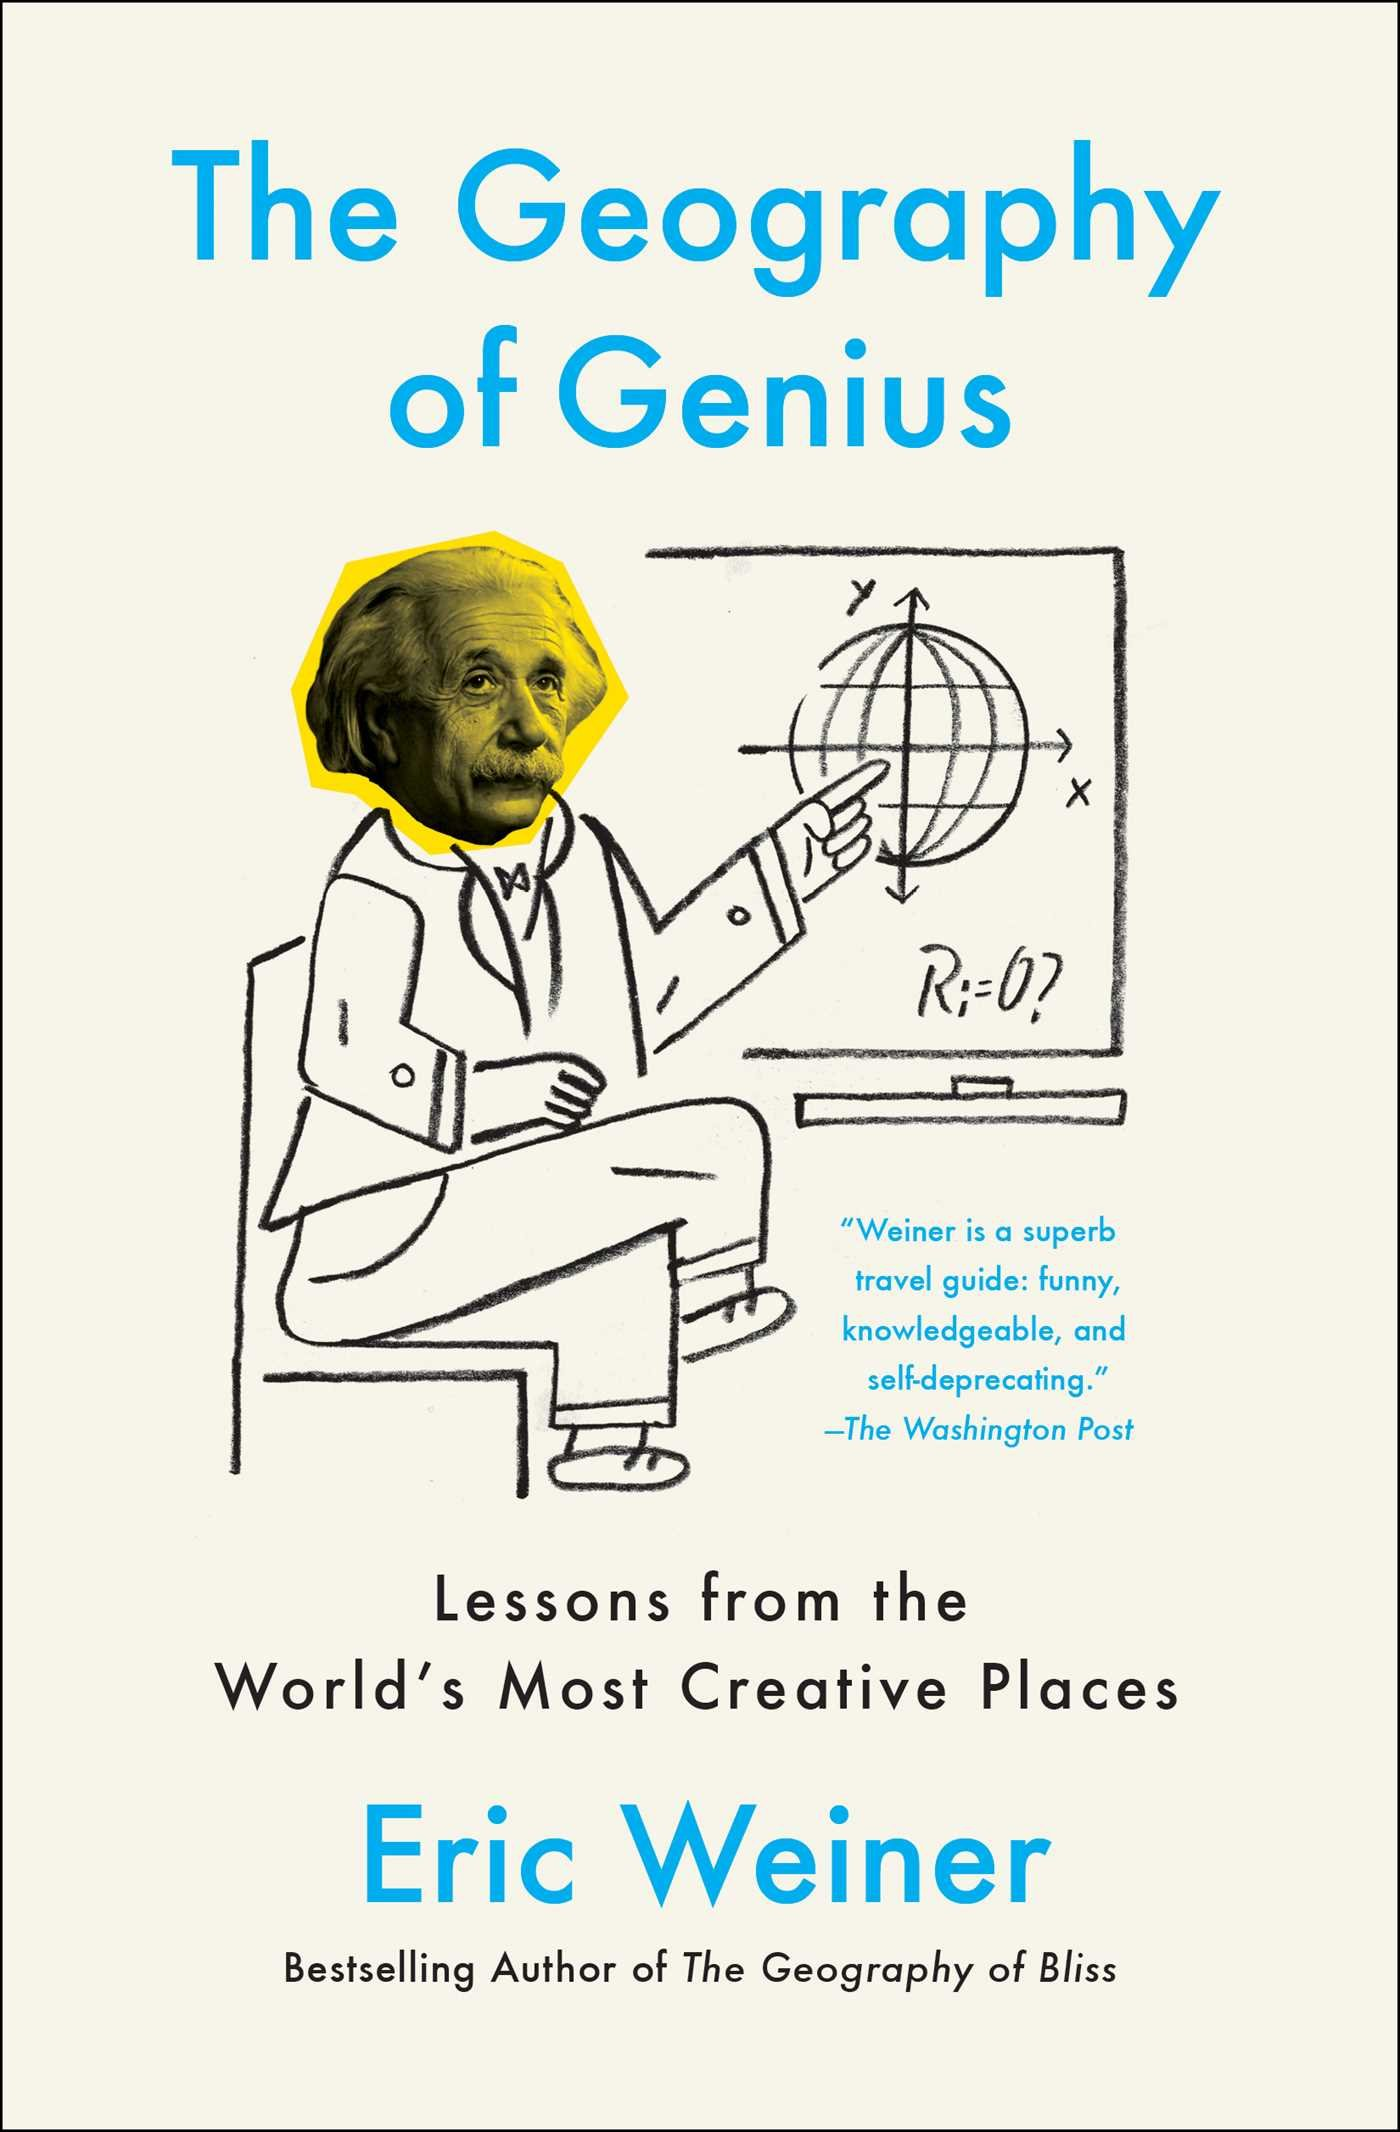 the-geography-of-genius-lessons-from-the-world-s-most-creative-places